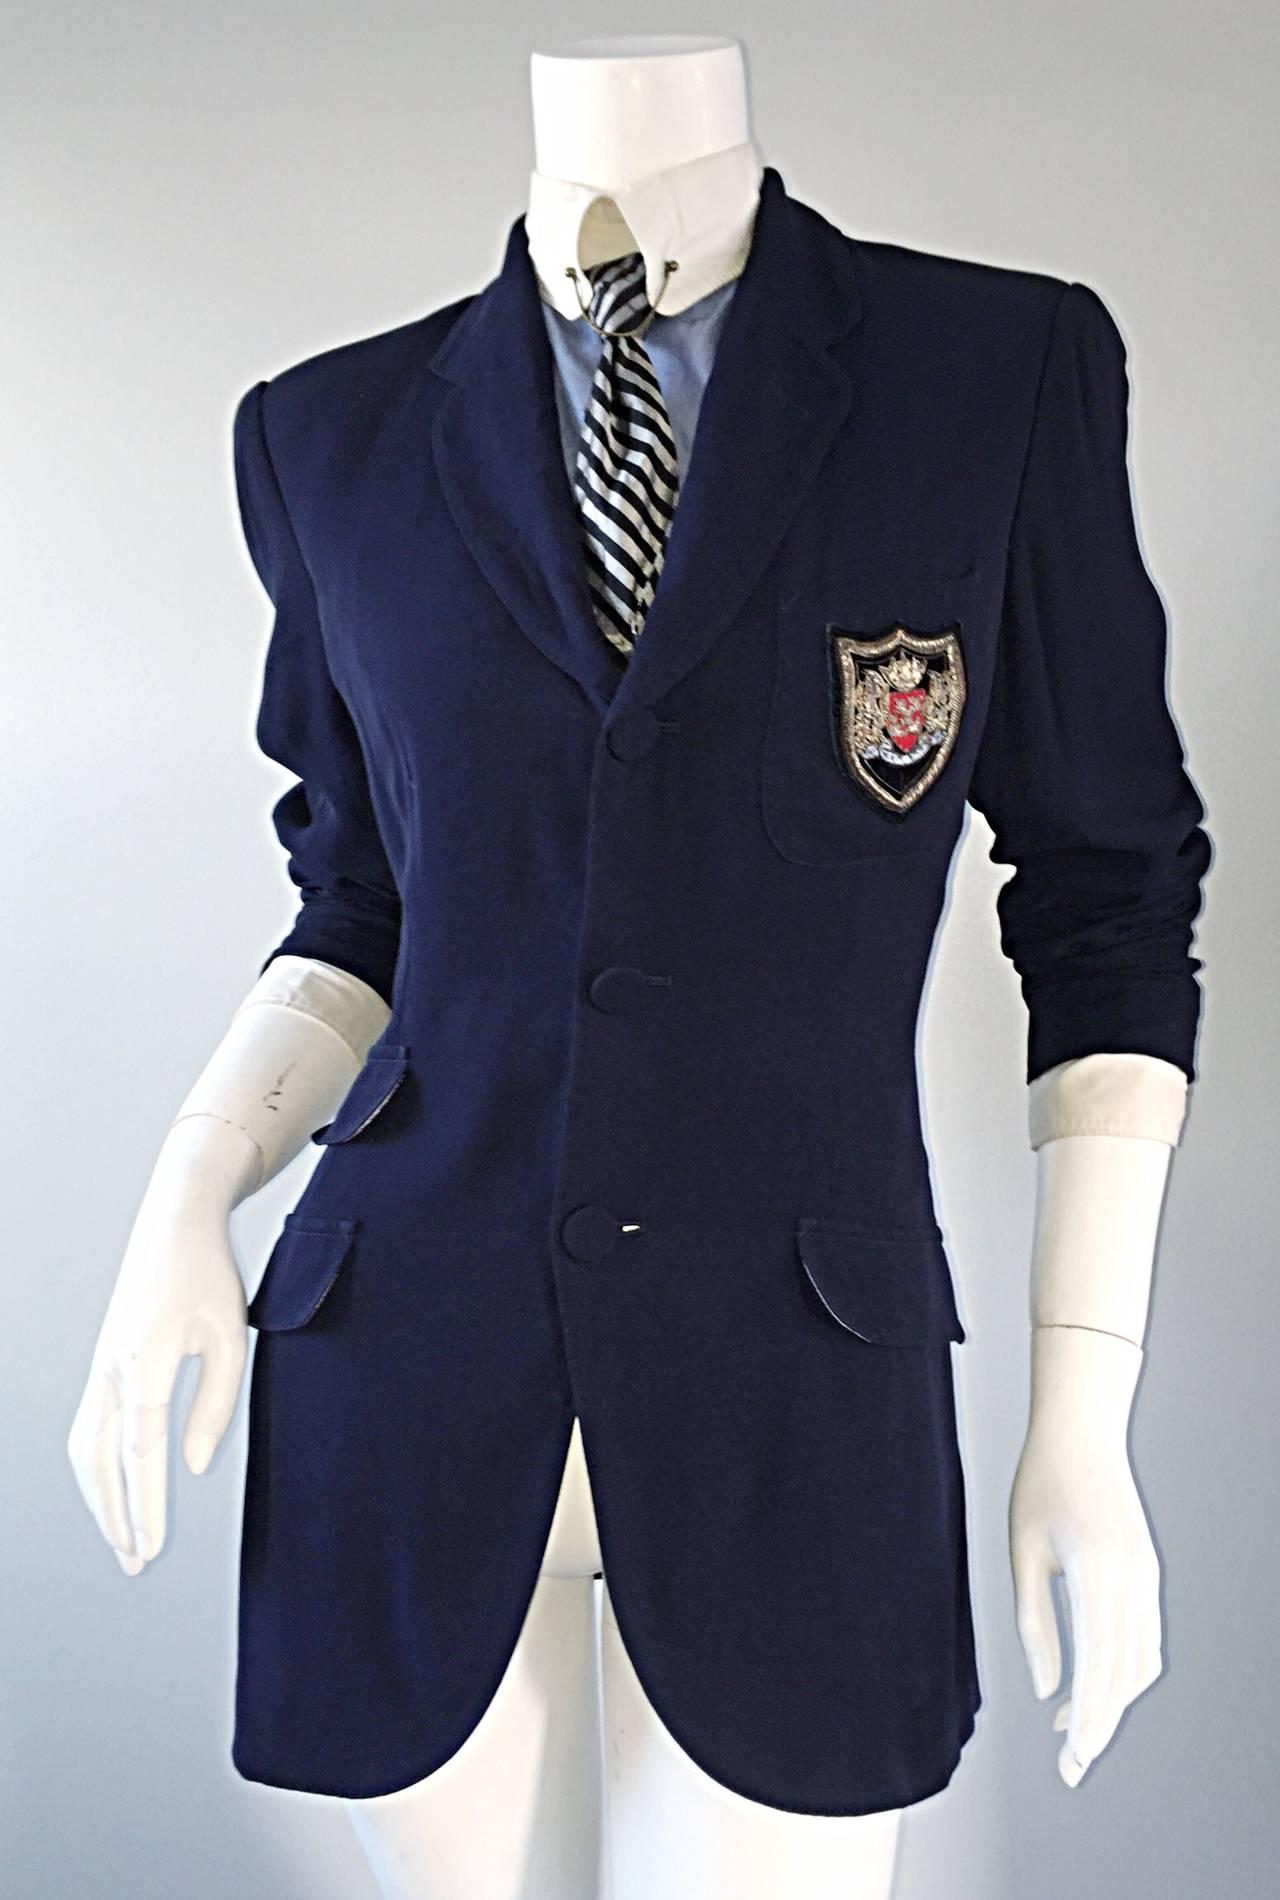 Extremely Rare Vintage Jean Paul Gaultier ' Schoolboy ' All - In - One Blazer 5